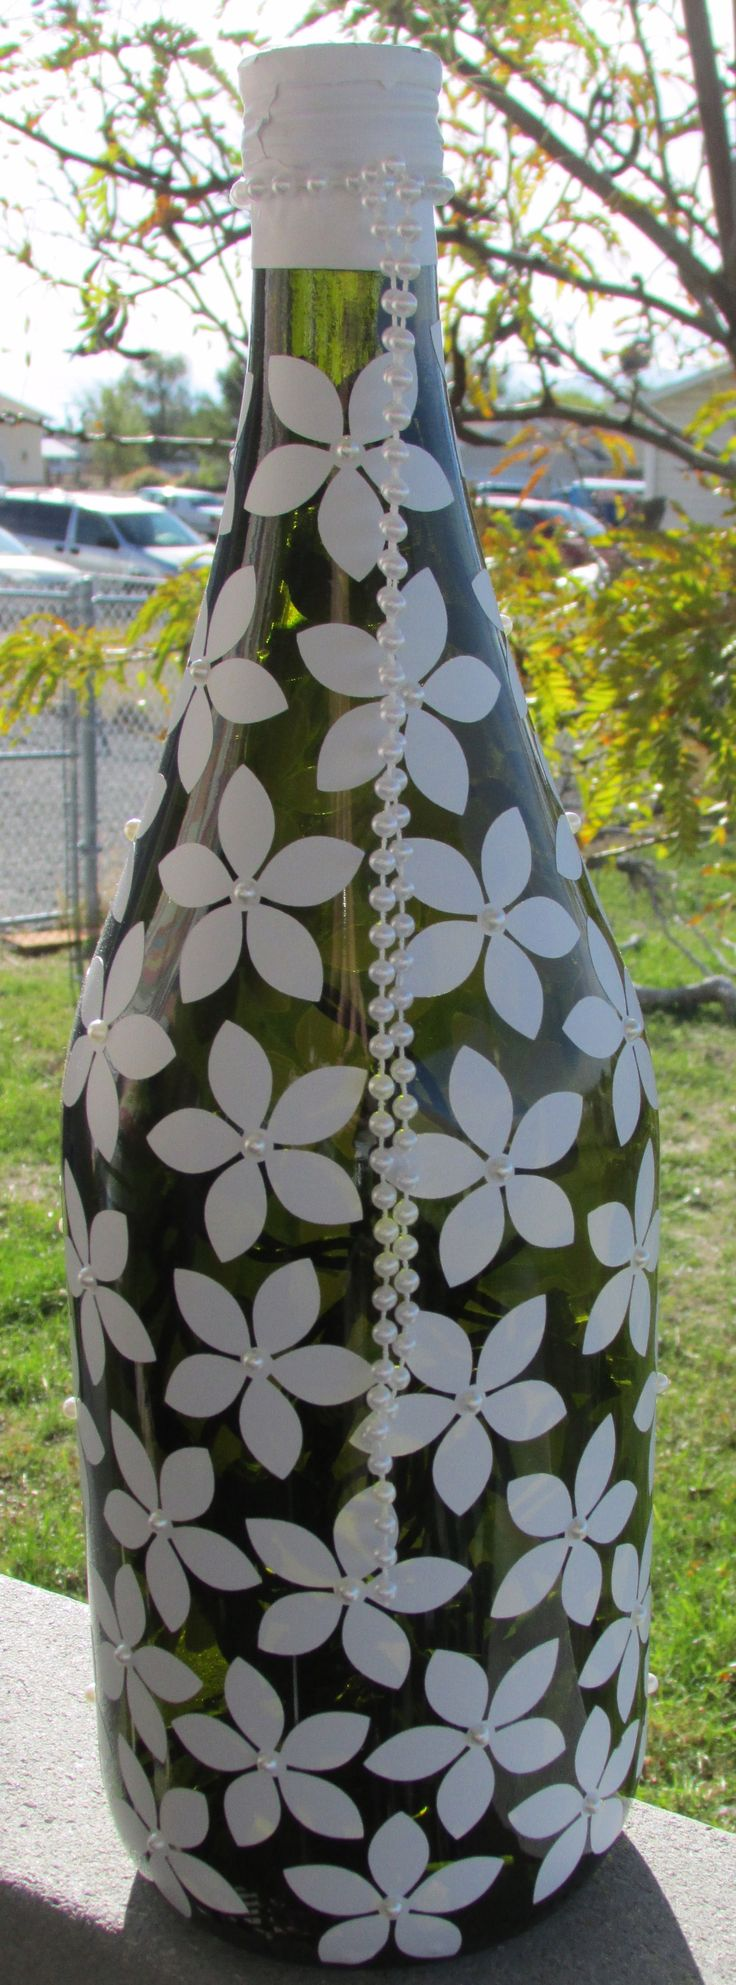 Saw a bottled painted similar to this. This is one flower shape out of vinyl with pearl centers. There are about 70 flowers on the bottle. Created by Karen Bennett